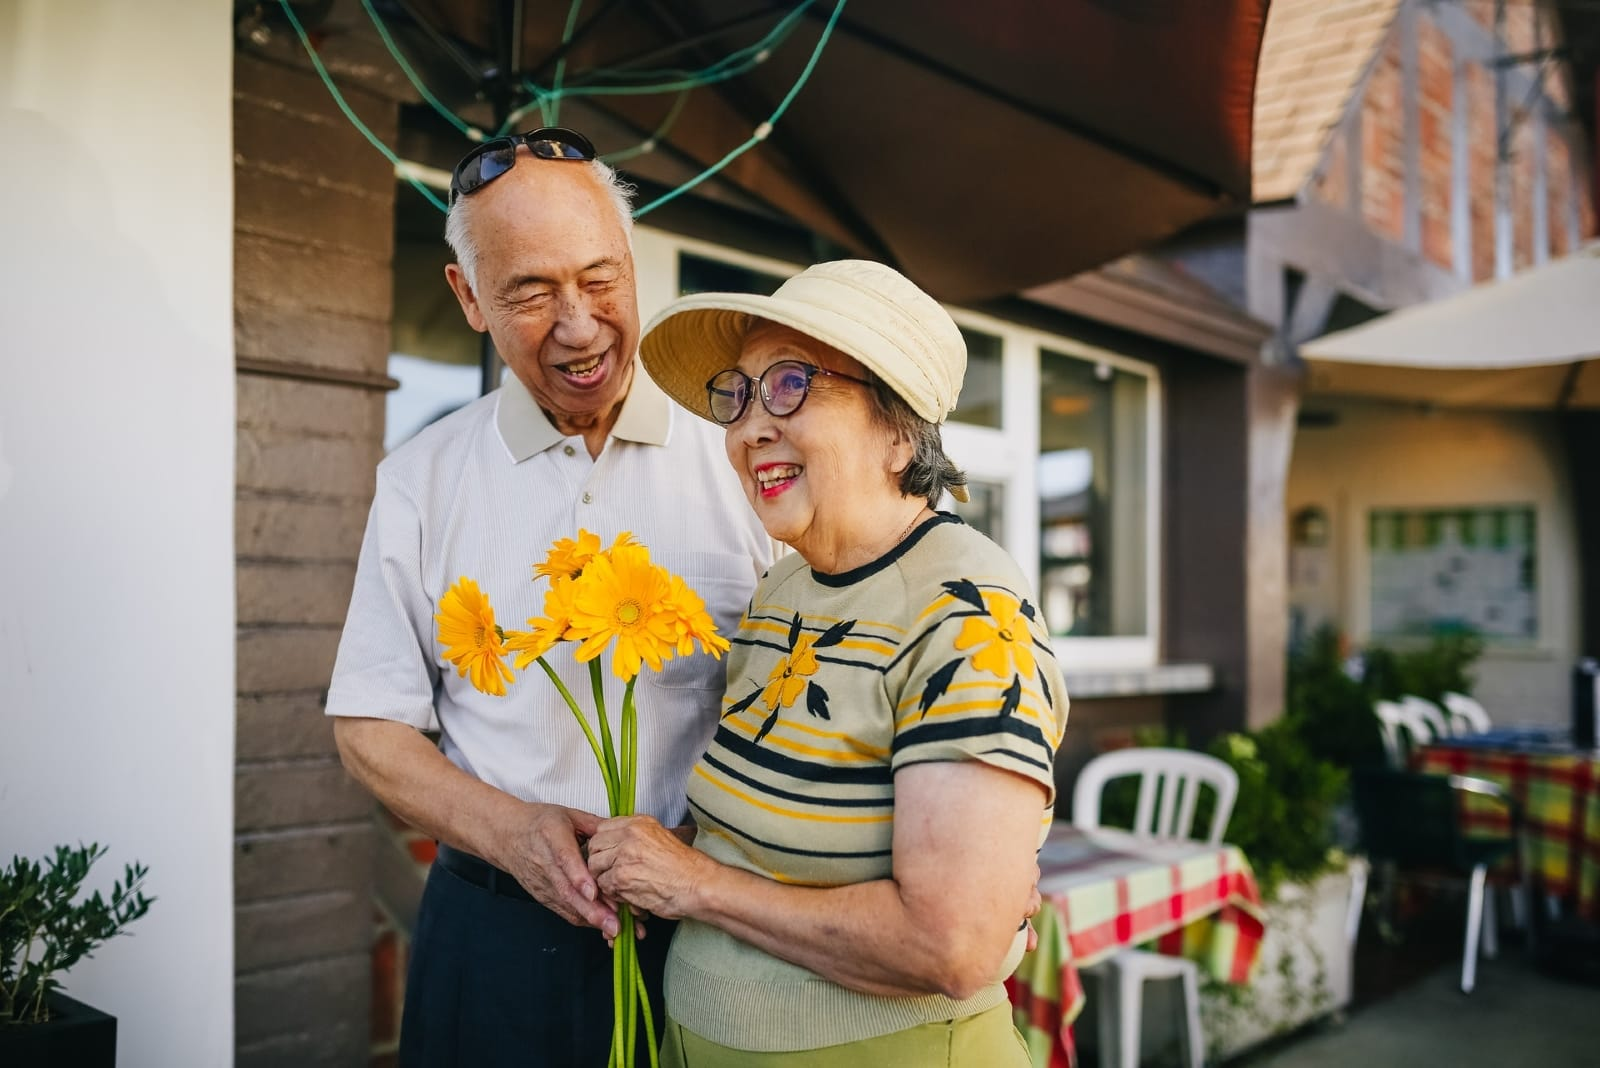 woman with bouquet of flowers and man hugging outdoor